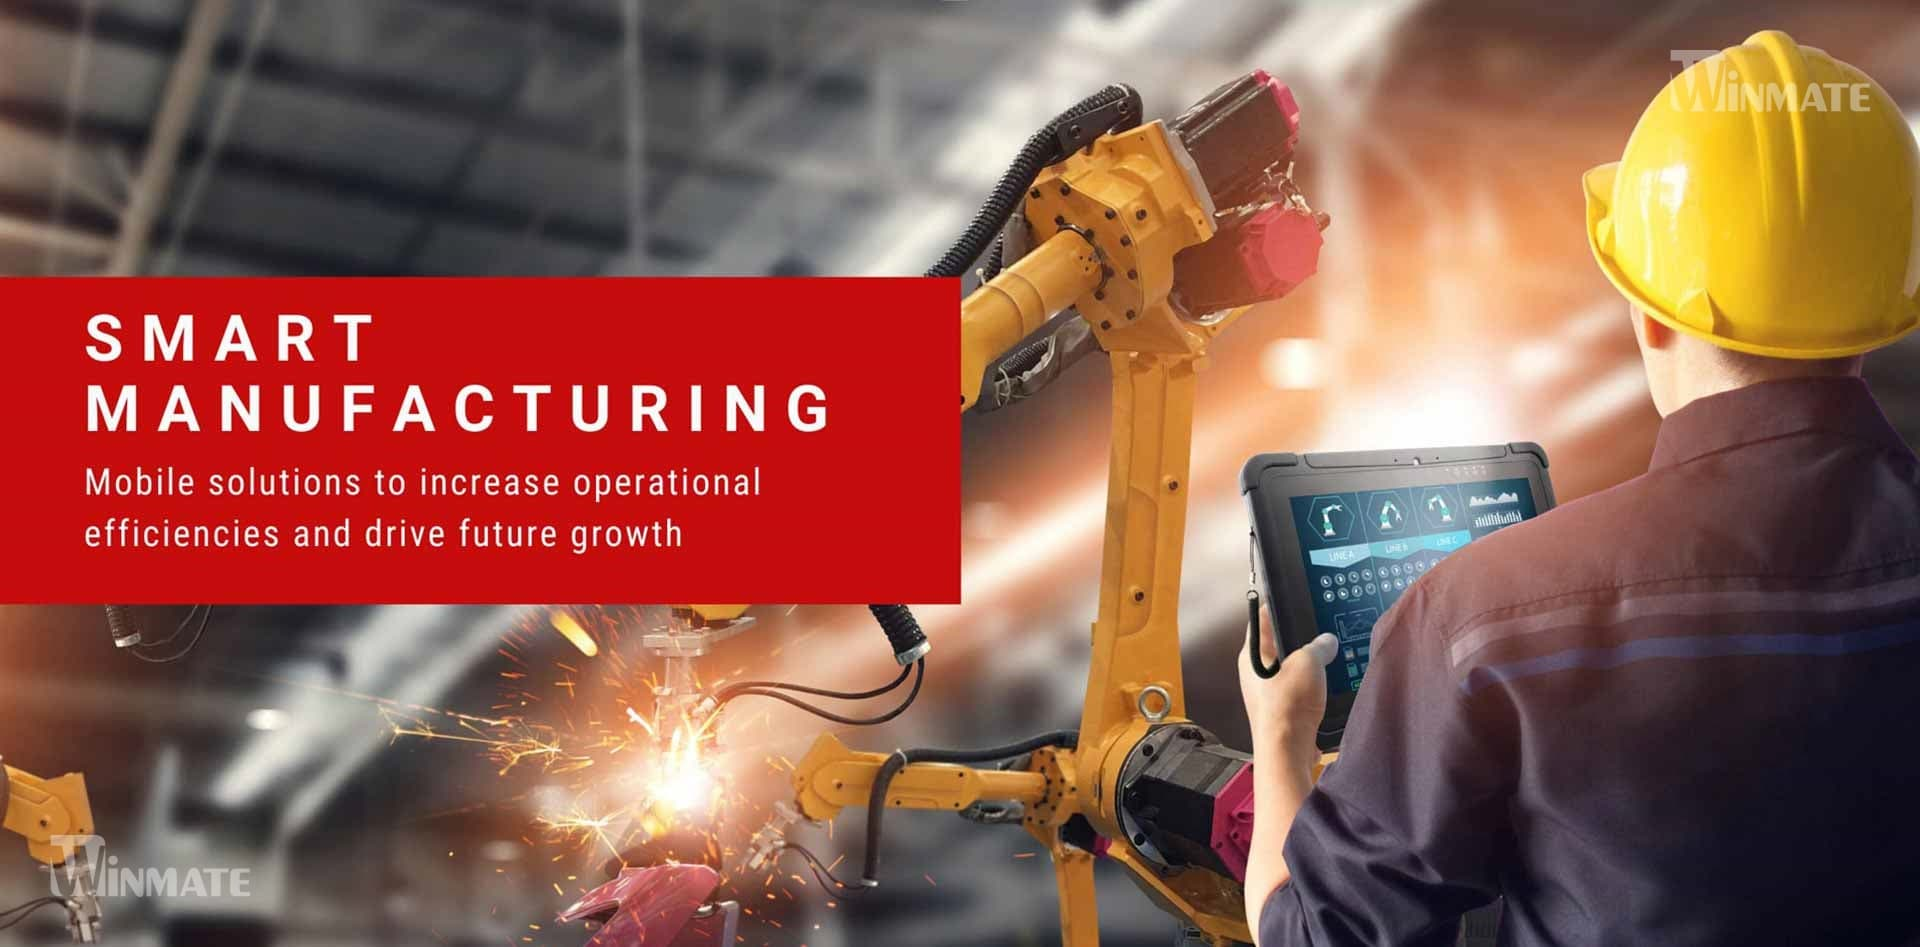 Enterprise Mobility Solutions For Smart Manufacturing application